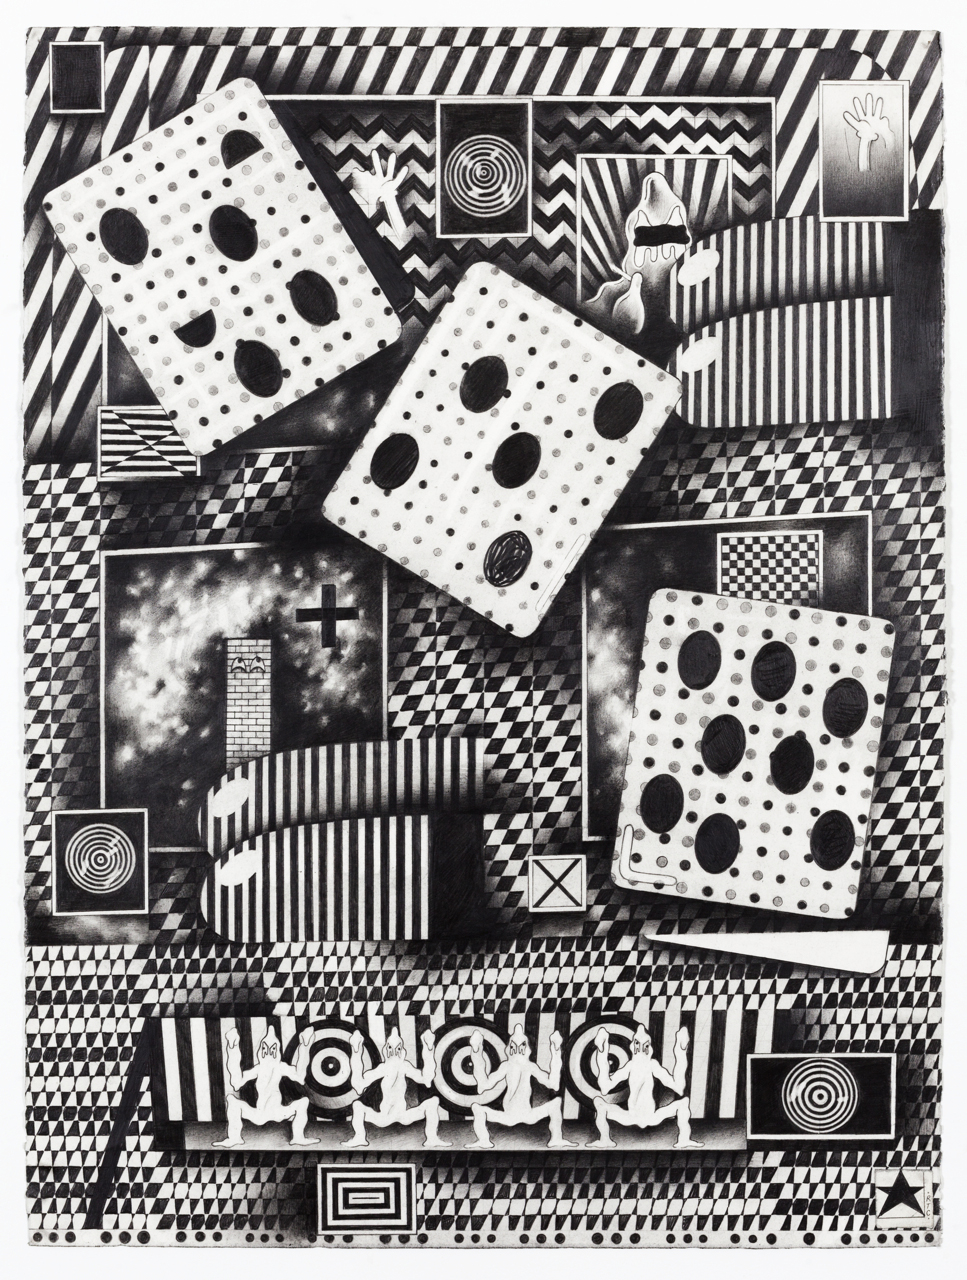 Weird Dice  2012 Graphite on paper 22 x 30 inches